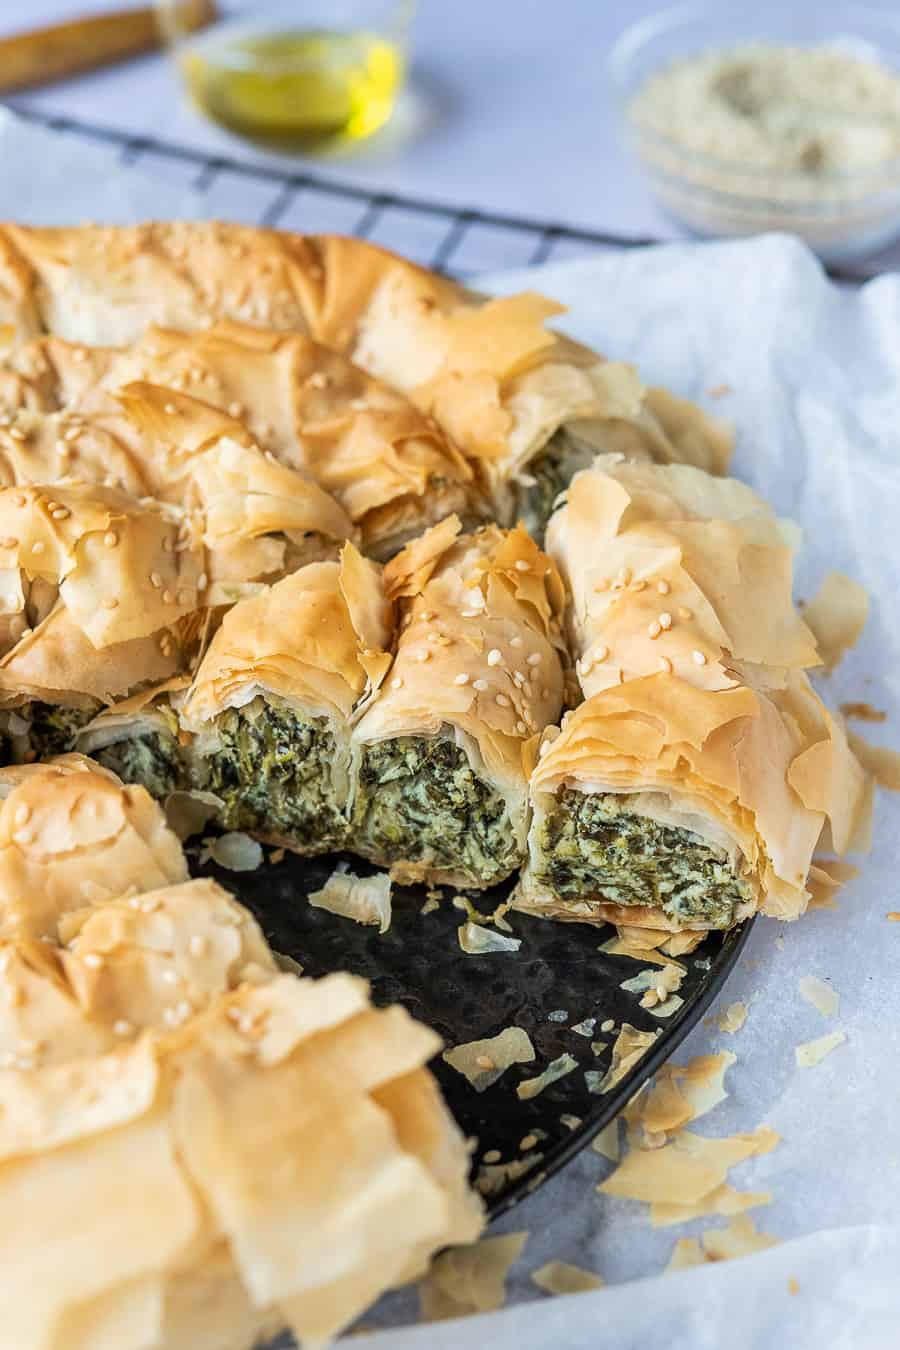 close up of a slice of vegan spinach and feta filo pastry pie.